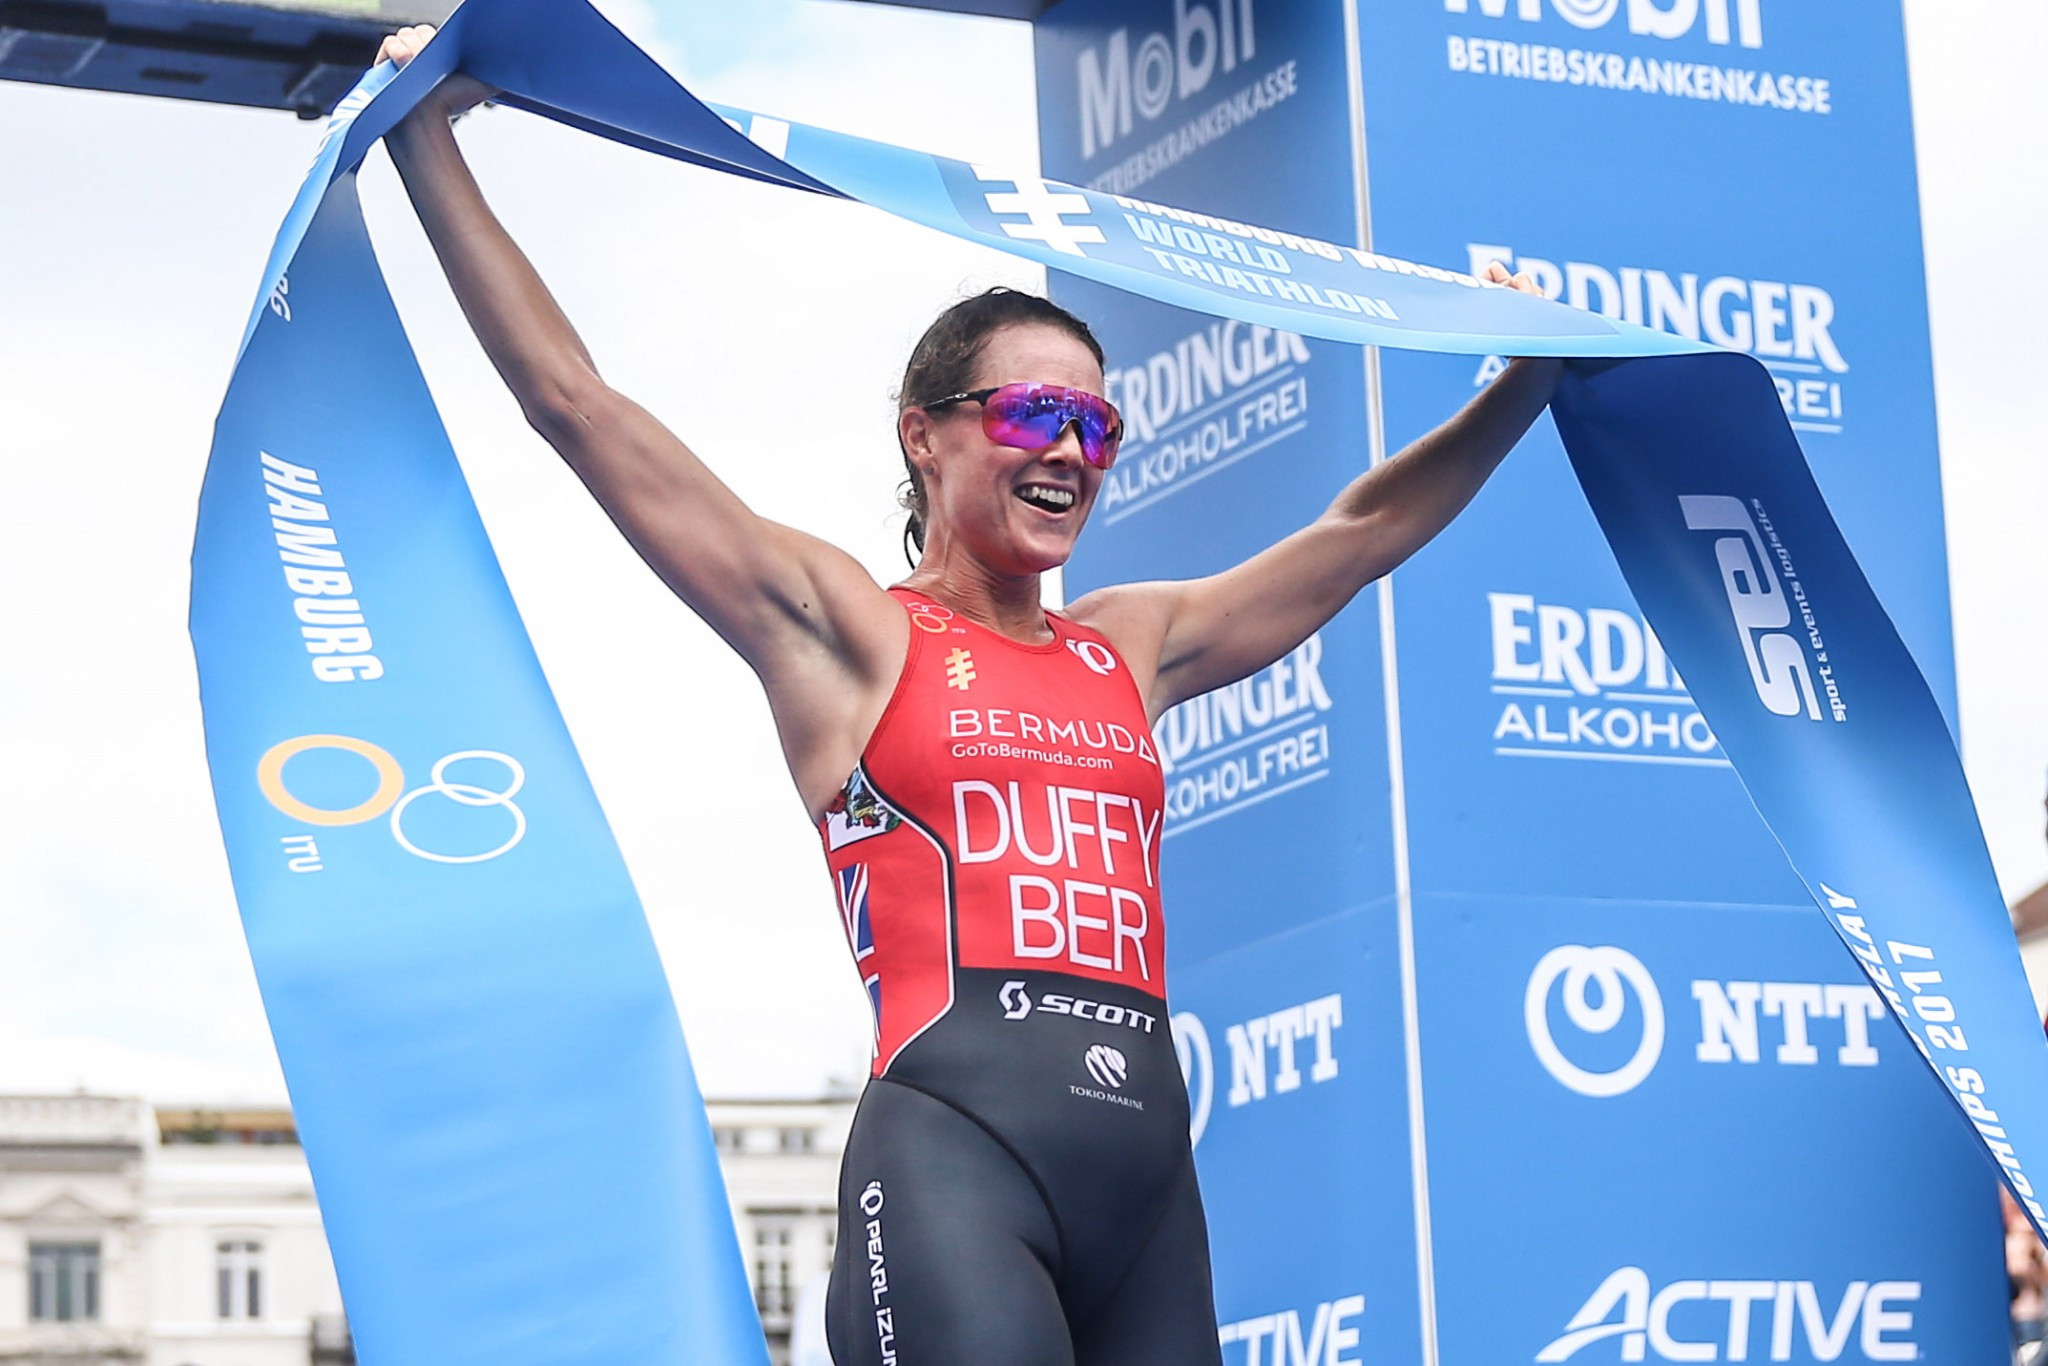 Mola and Duffy have Grand Final certainty ahead of WTS Stockholm race